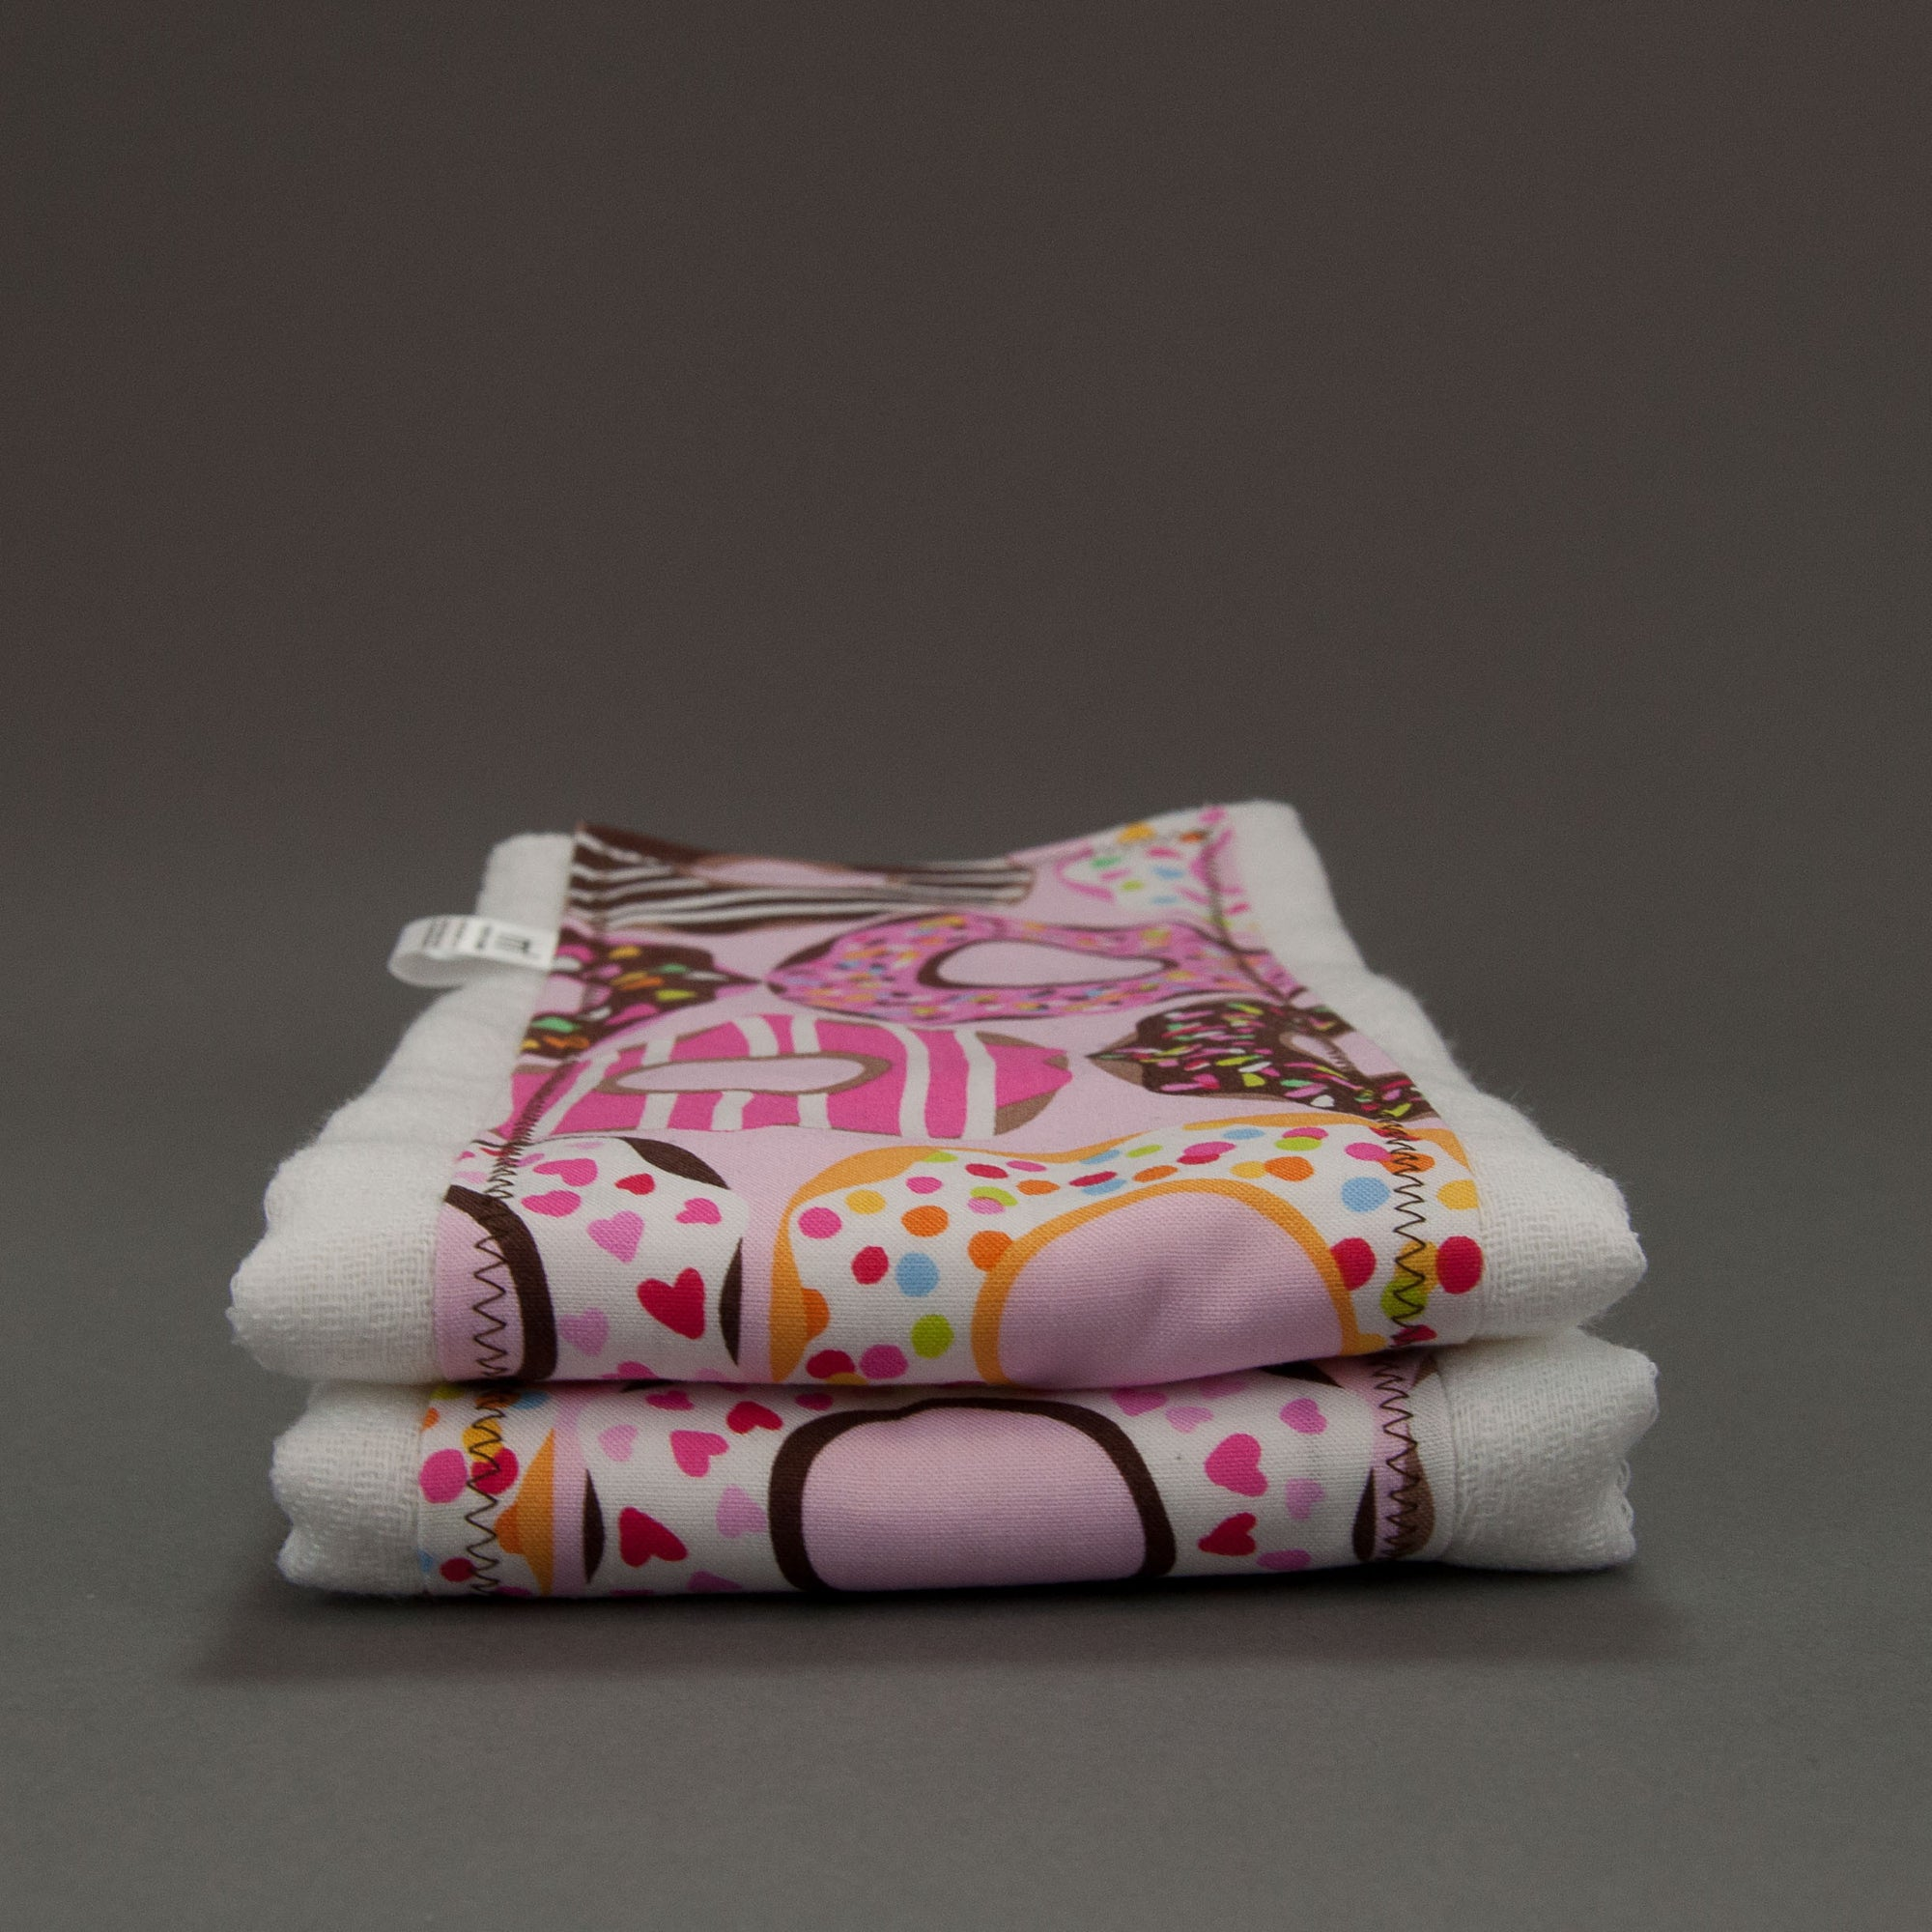 Pink Doughnuts Burp Cloth Set, Burp Cloth Set, - MarshMueller